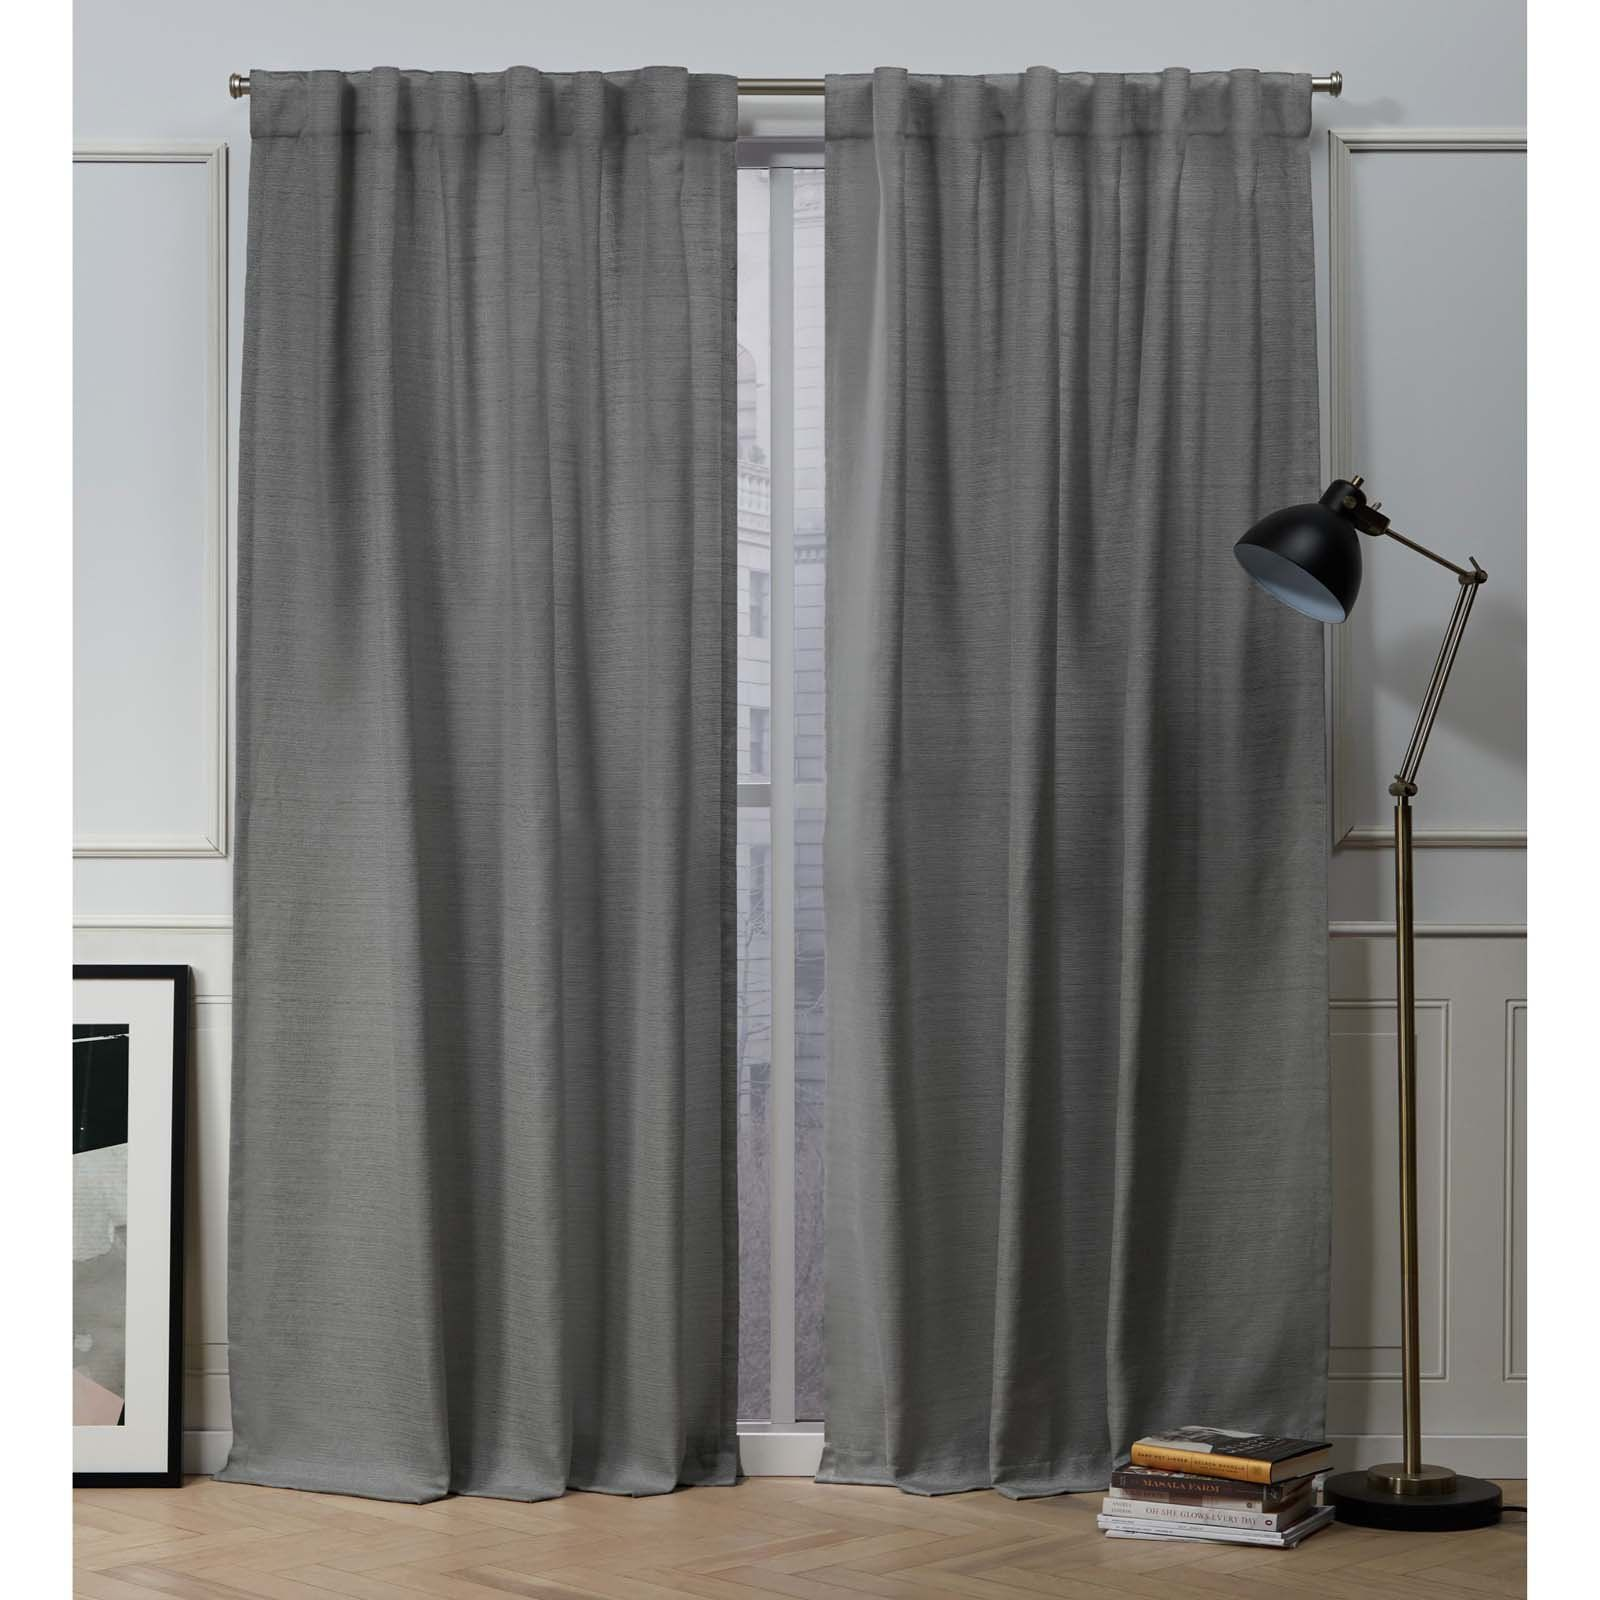 Nicole Miller New York Mellow Slub Textured Hidden Tab Top Curtain